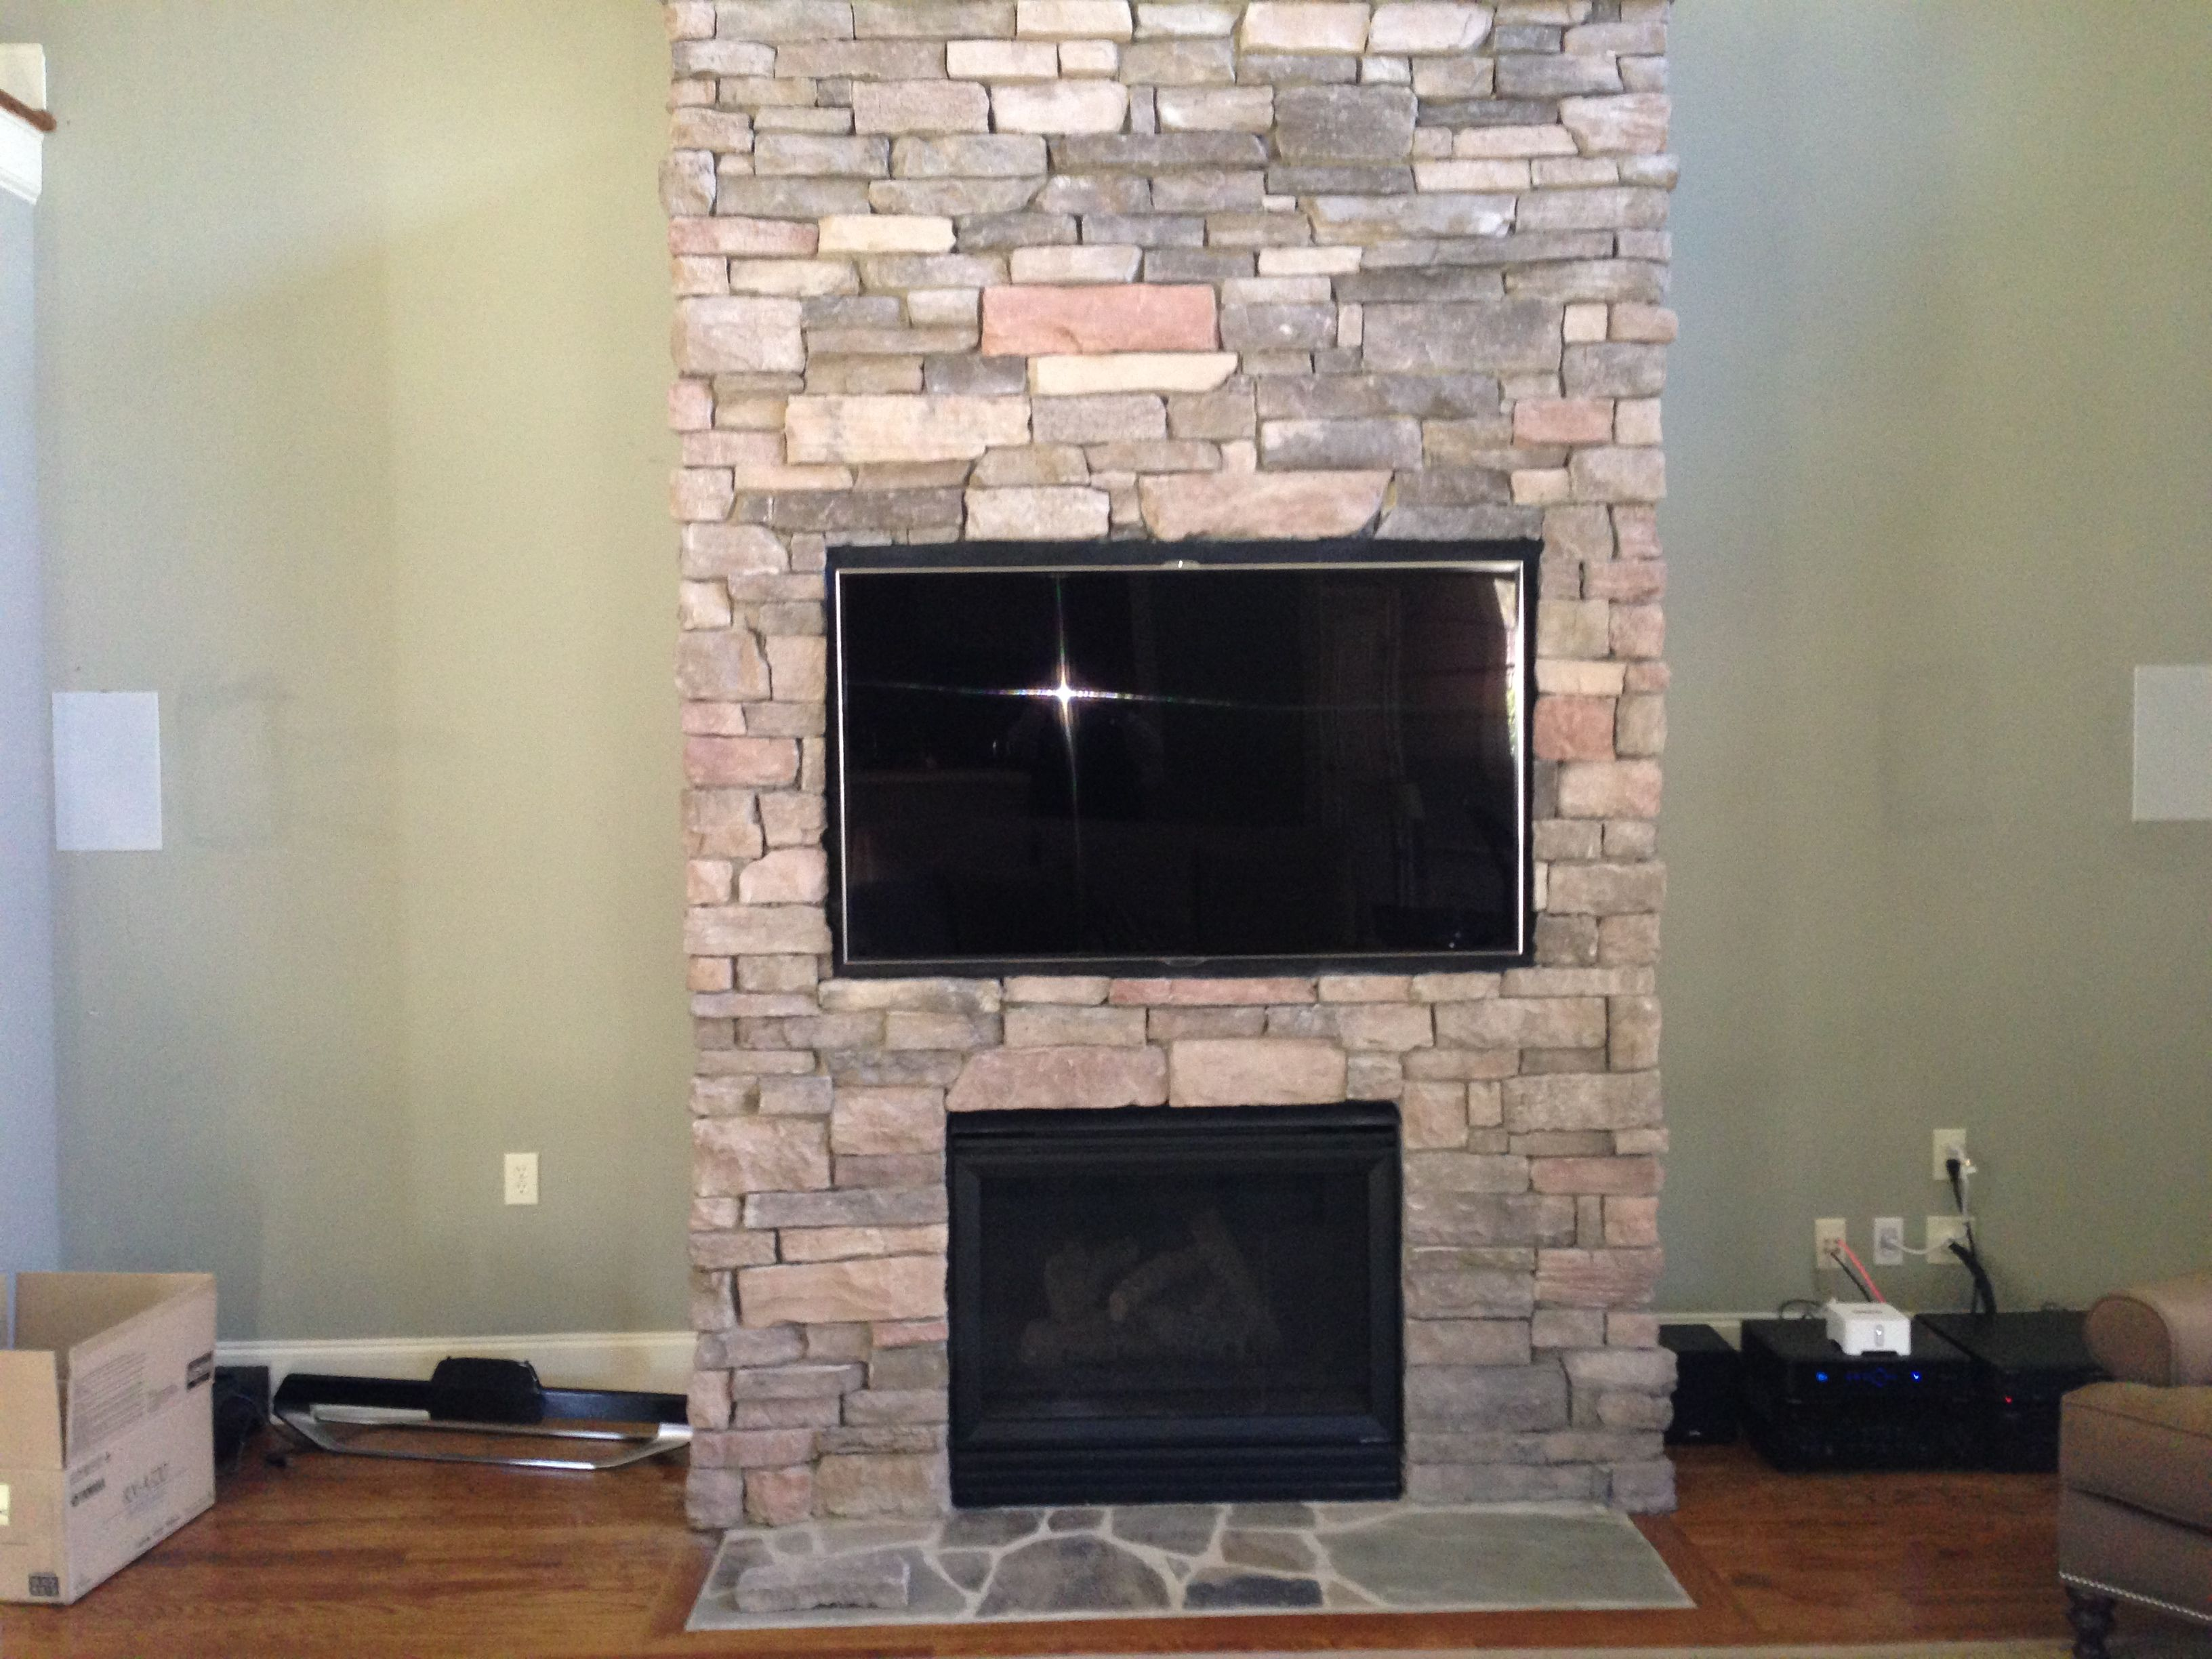 How To Wall Mount A Flat Screen Tv With Above Fireplace